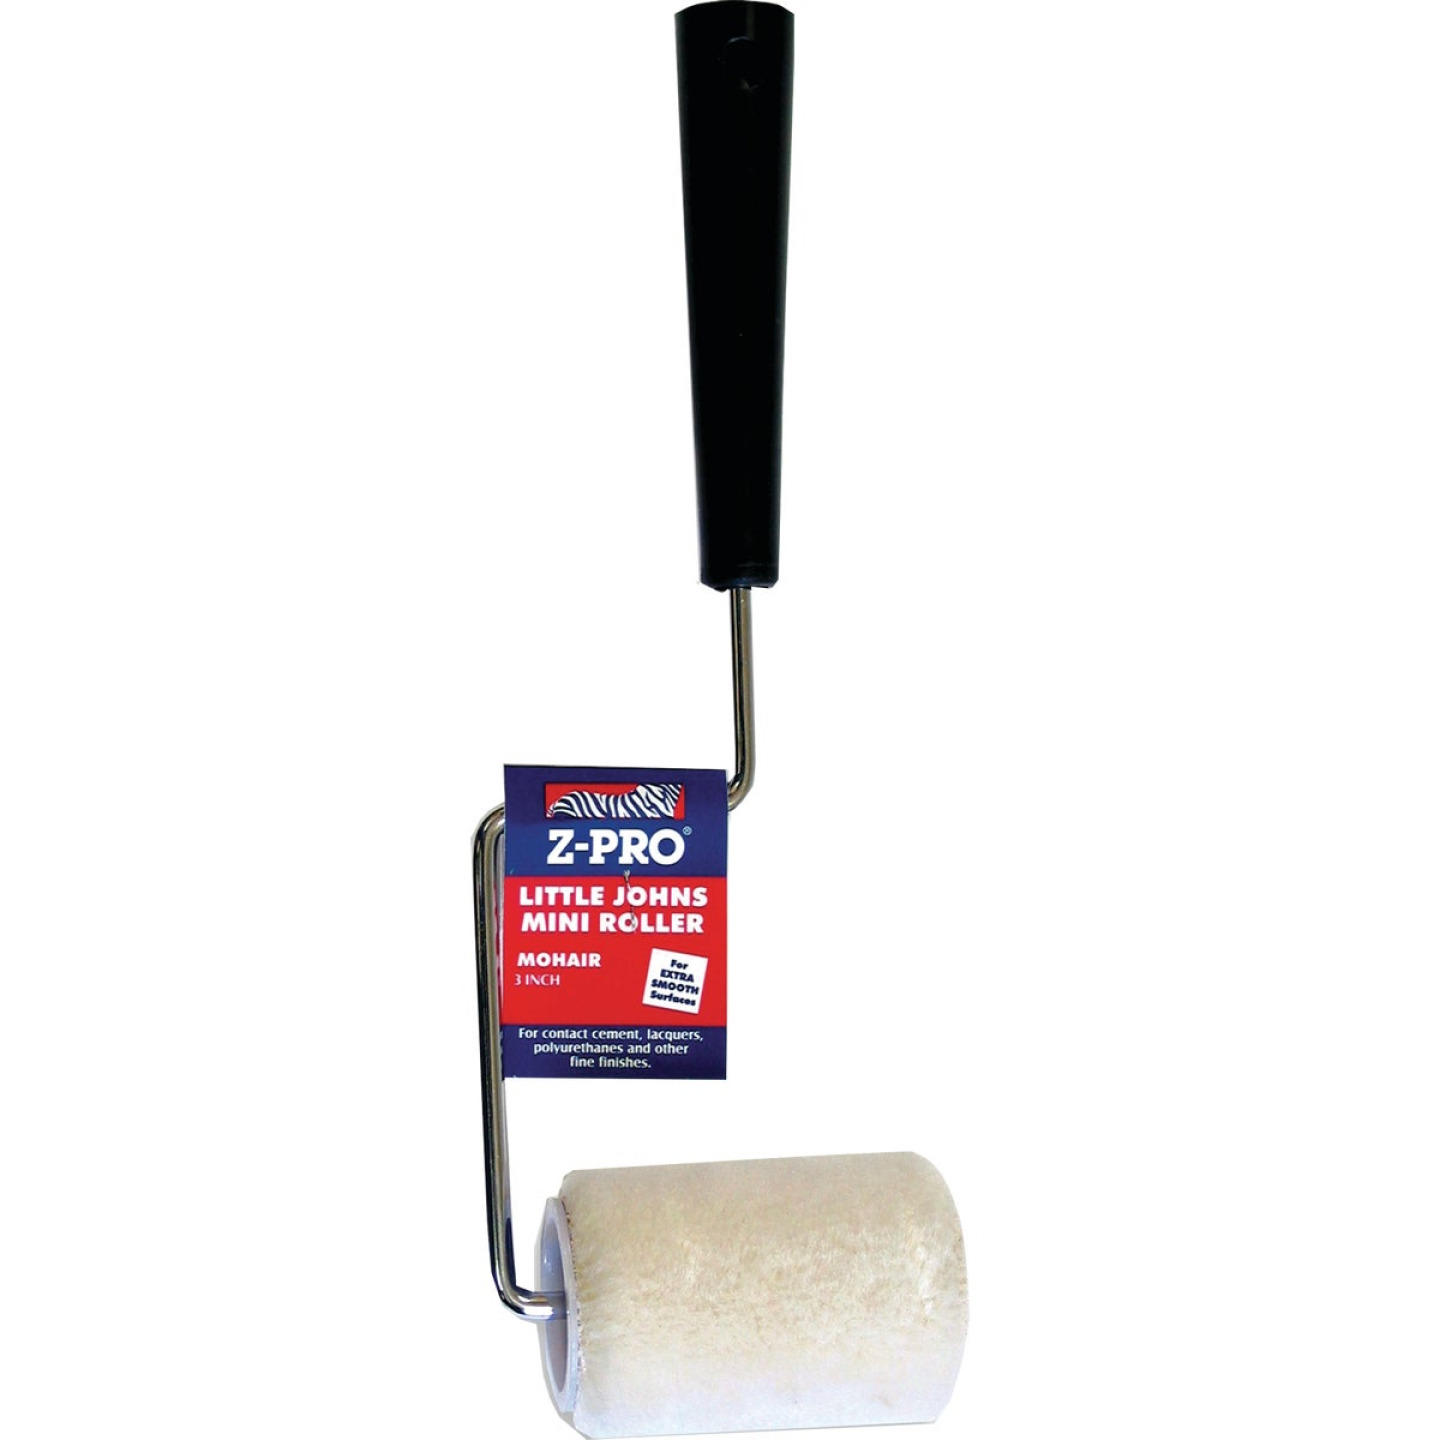 Premier Z-Pro 3 In. x 1/4 In. Smooth Mohair Paint Roller Cover & Frame Image 1